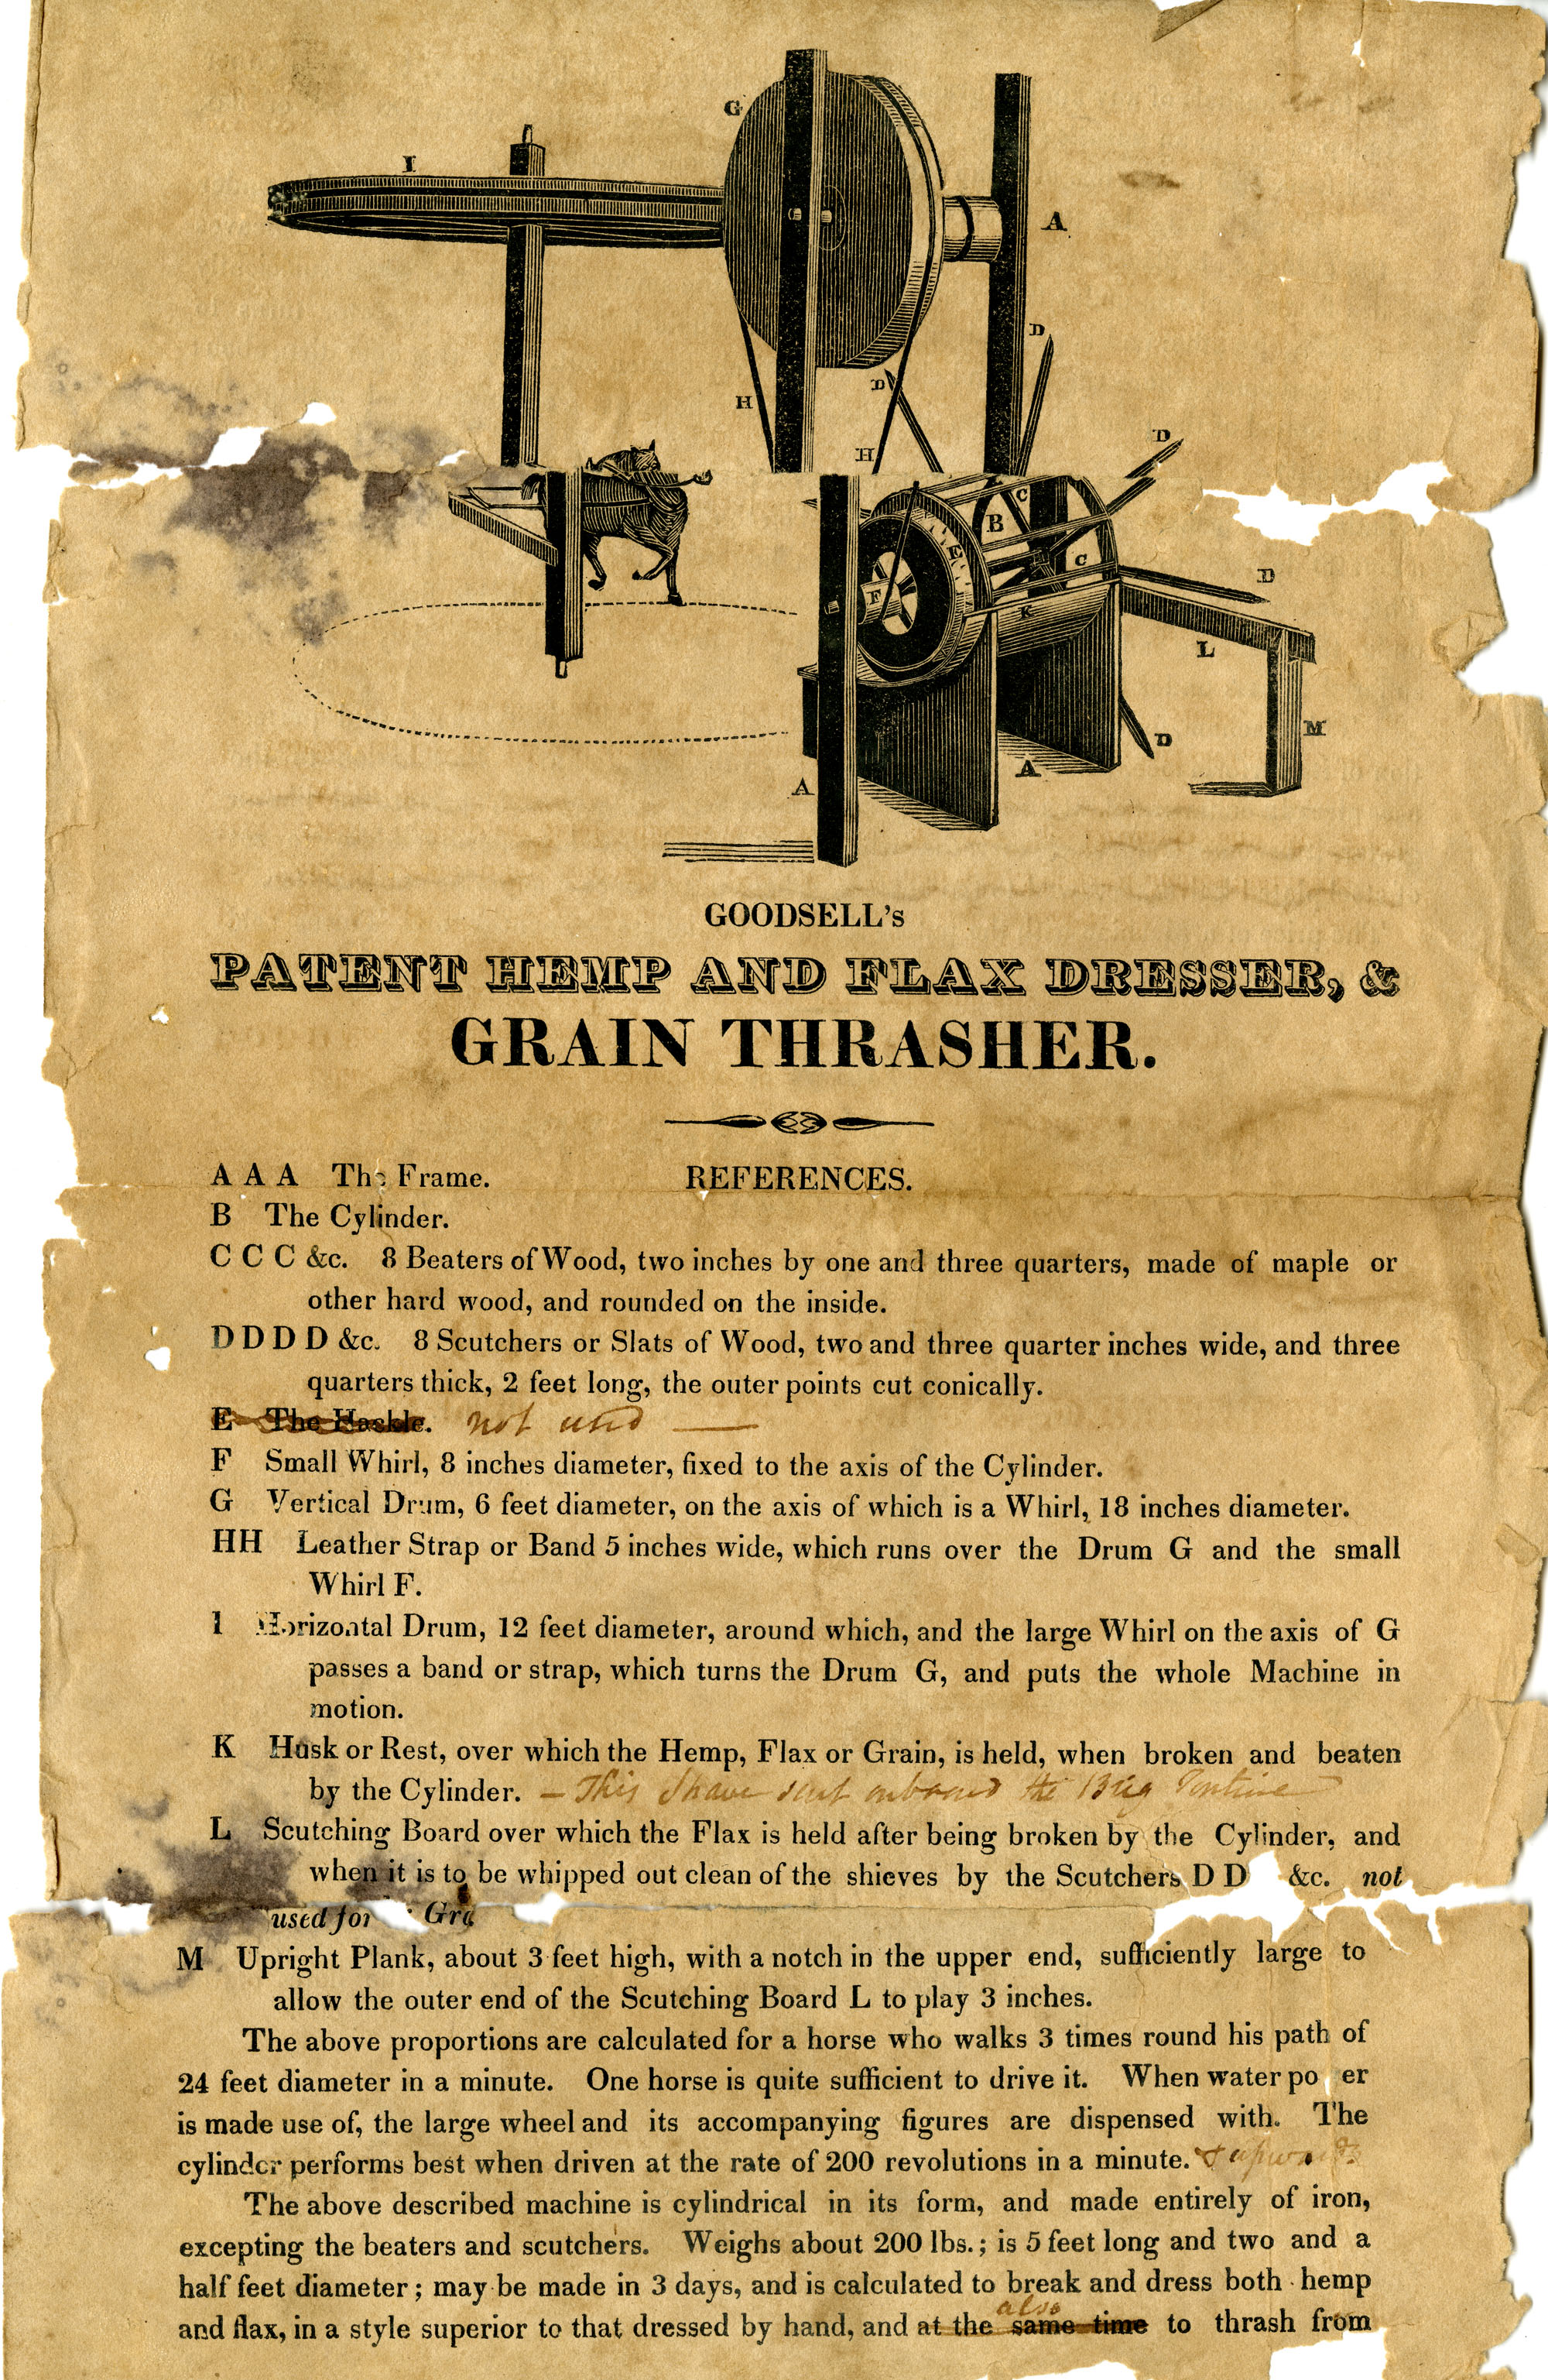 Illustrated advertisement for Goodsell's patent hemp and flax dresser & grain thrasher